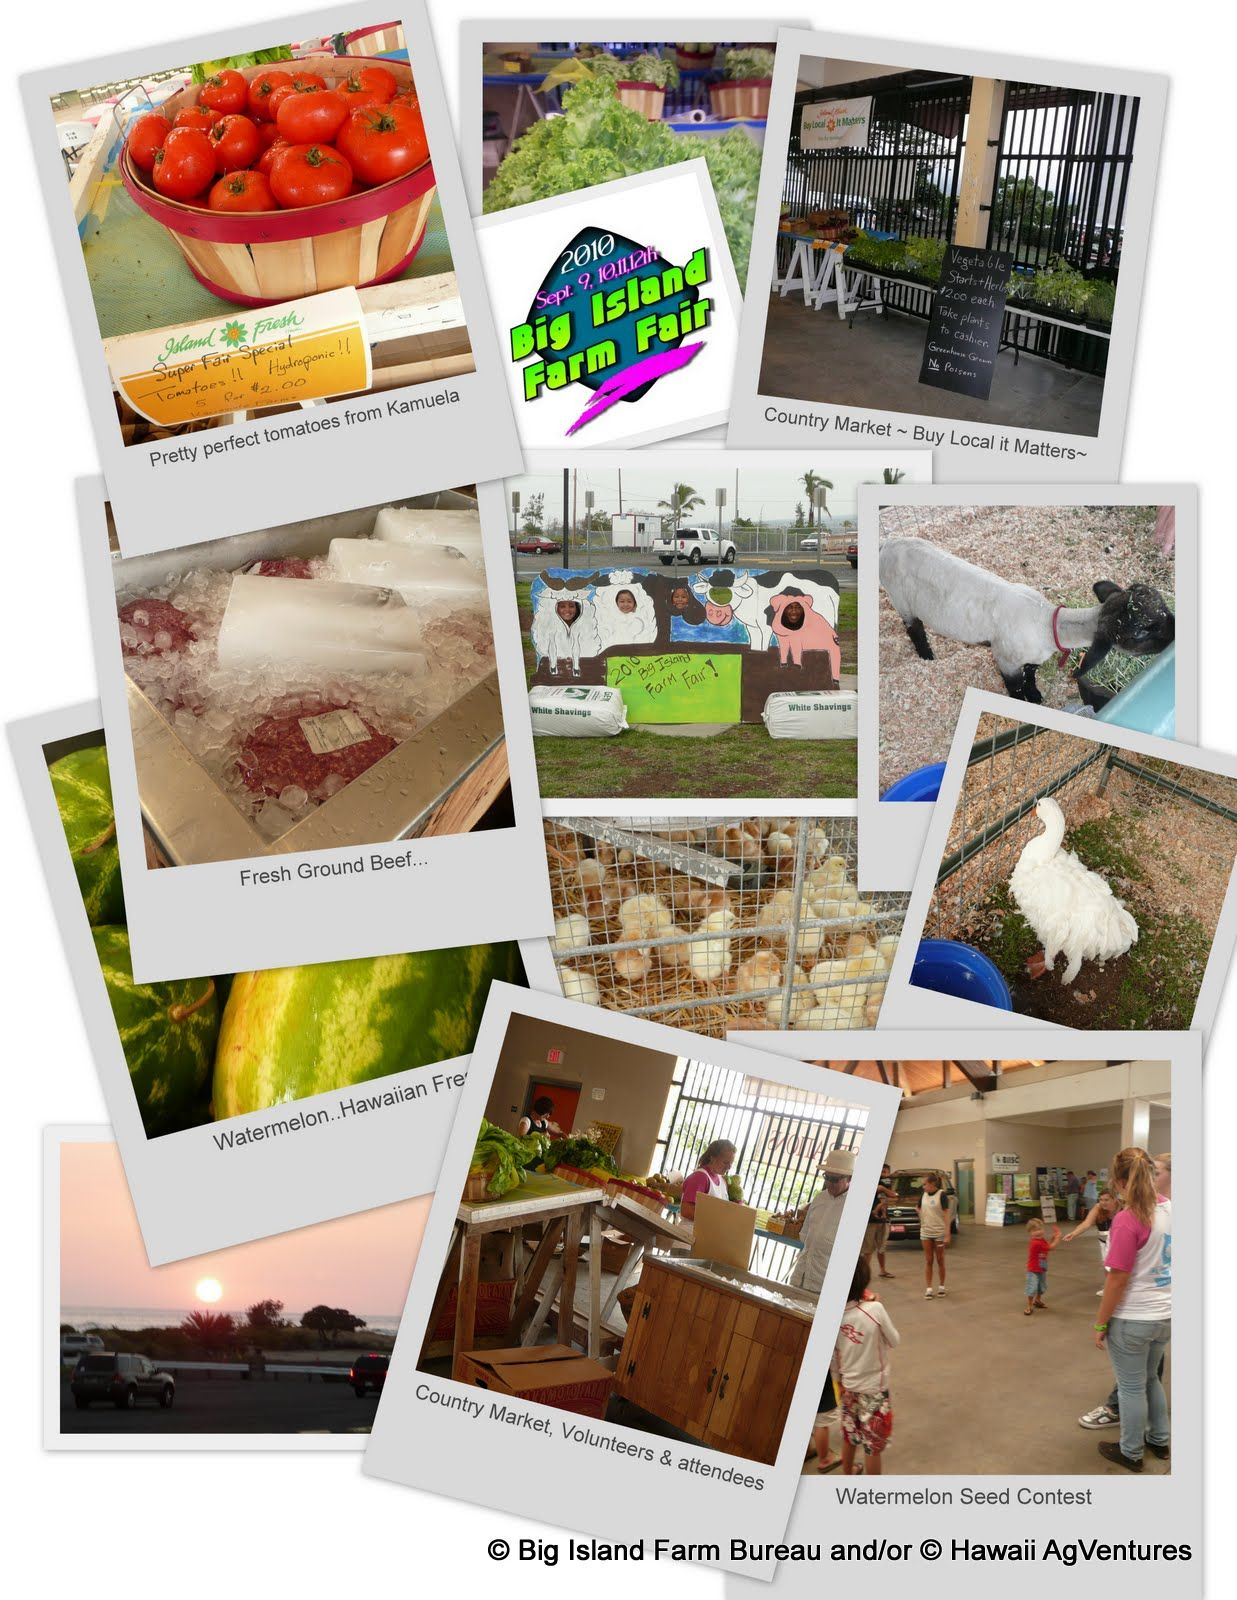 We produce the Big Island Farm Fair held annually in Kailua-Kona, Hawaii